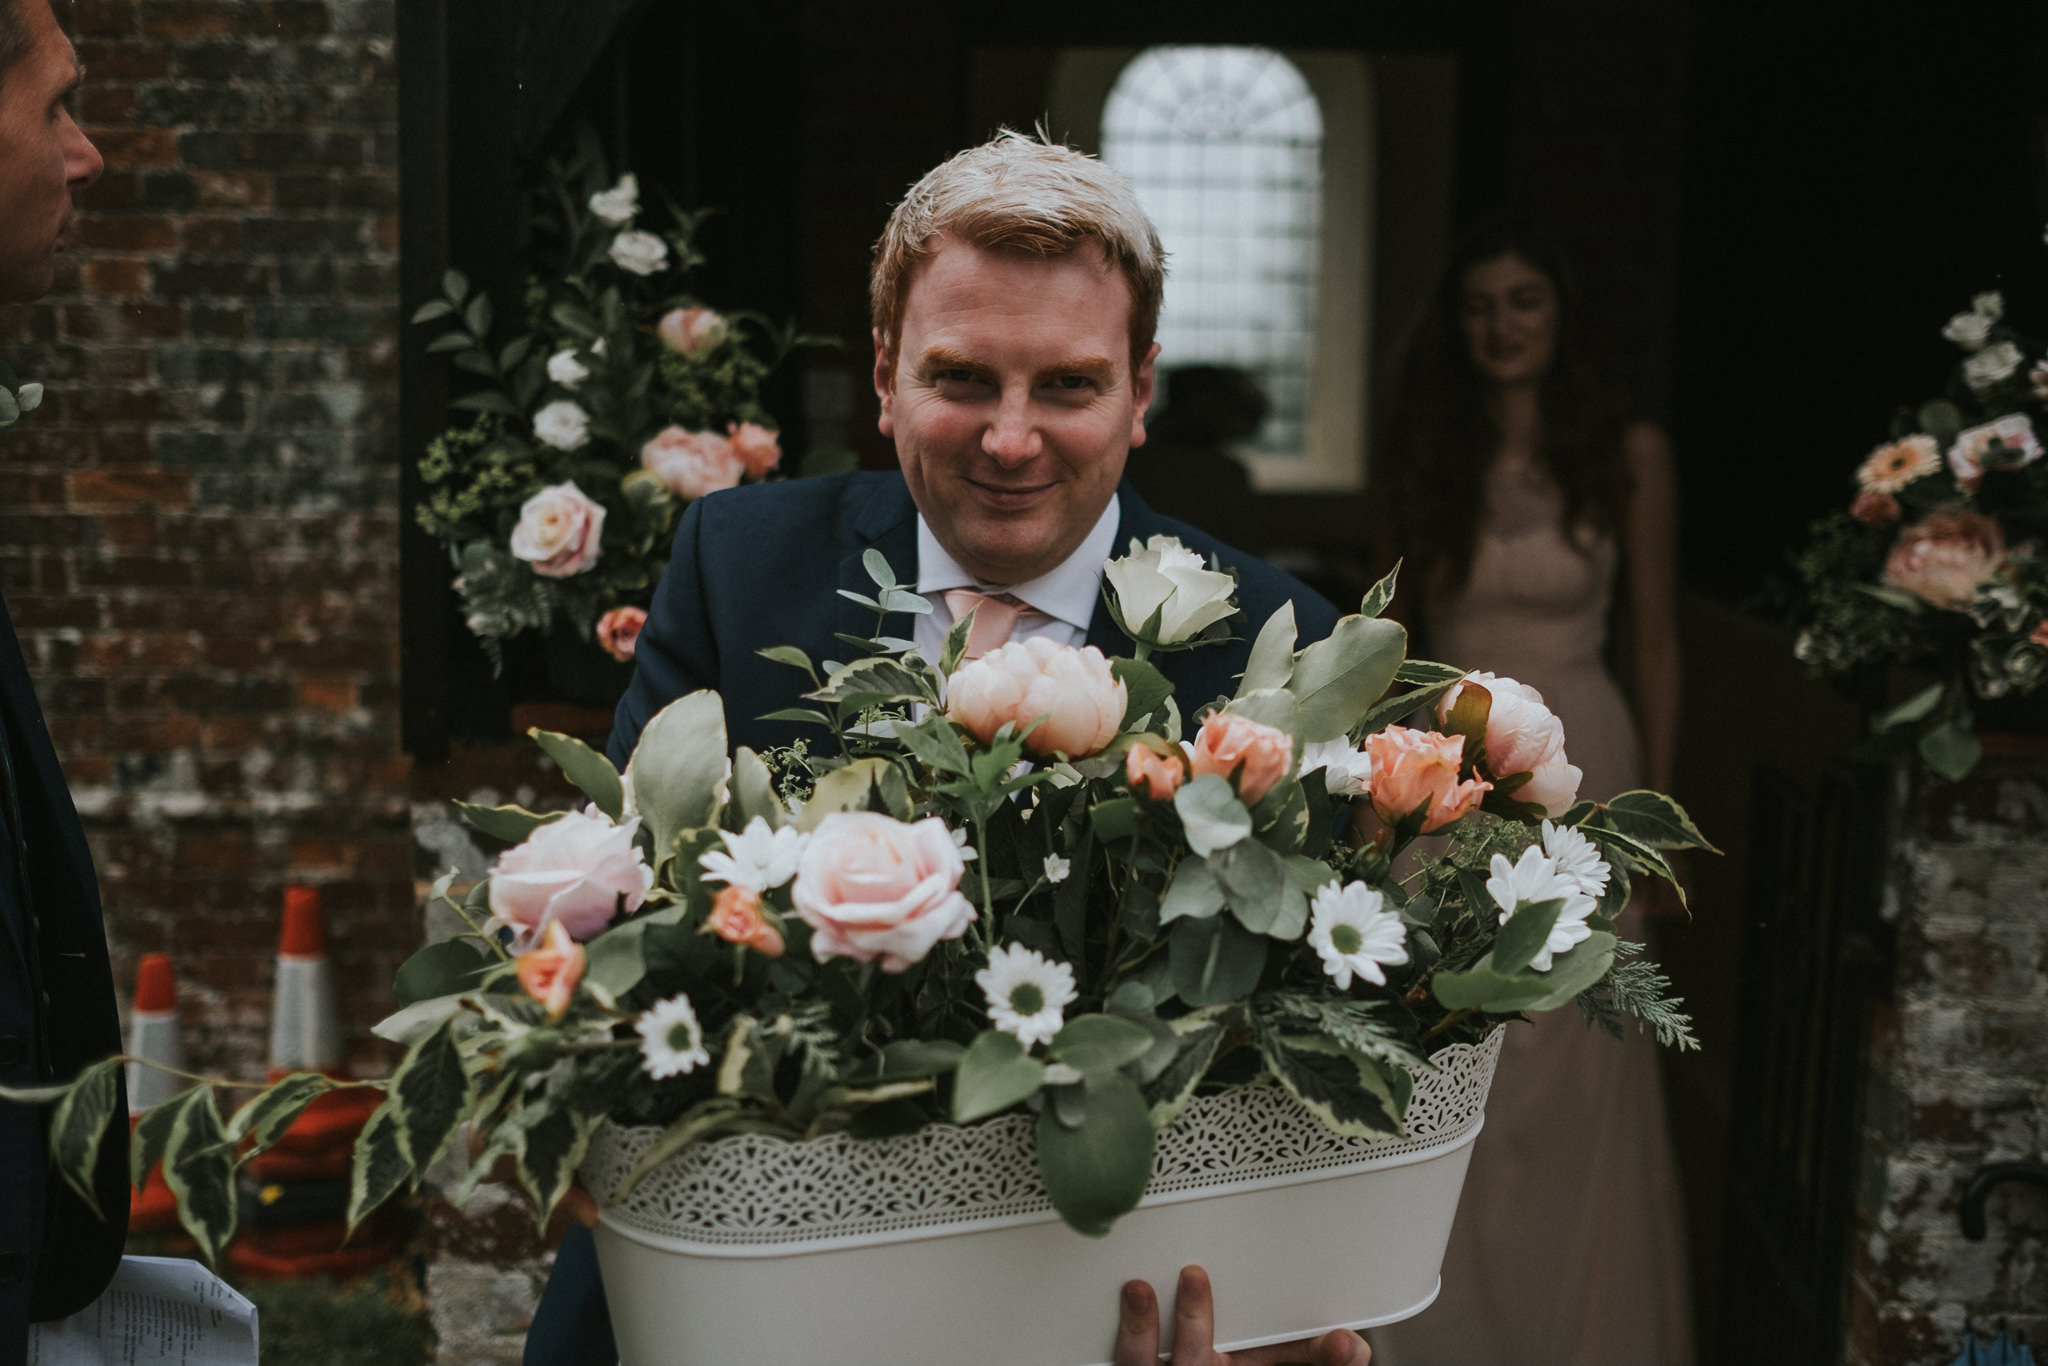 berkshire_wedding_photographer_emma_simon (178 of 327).jpg